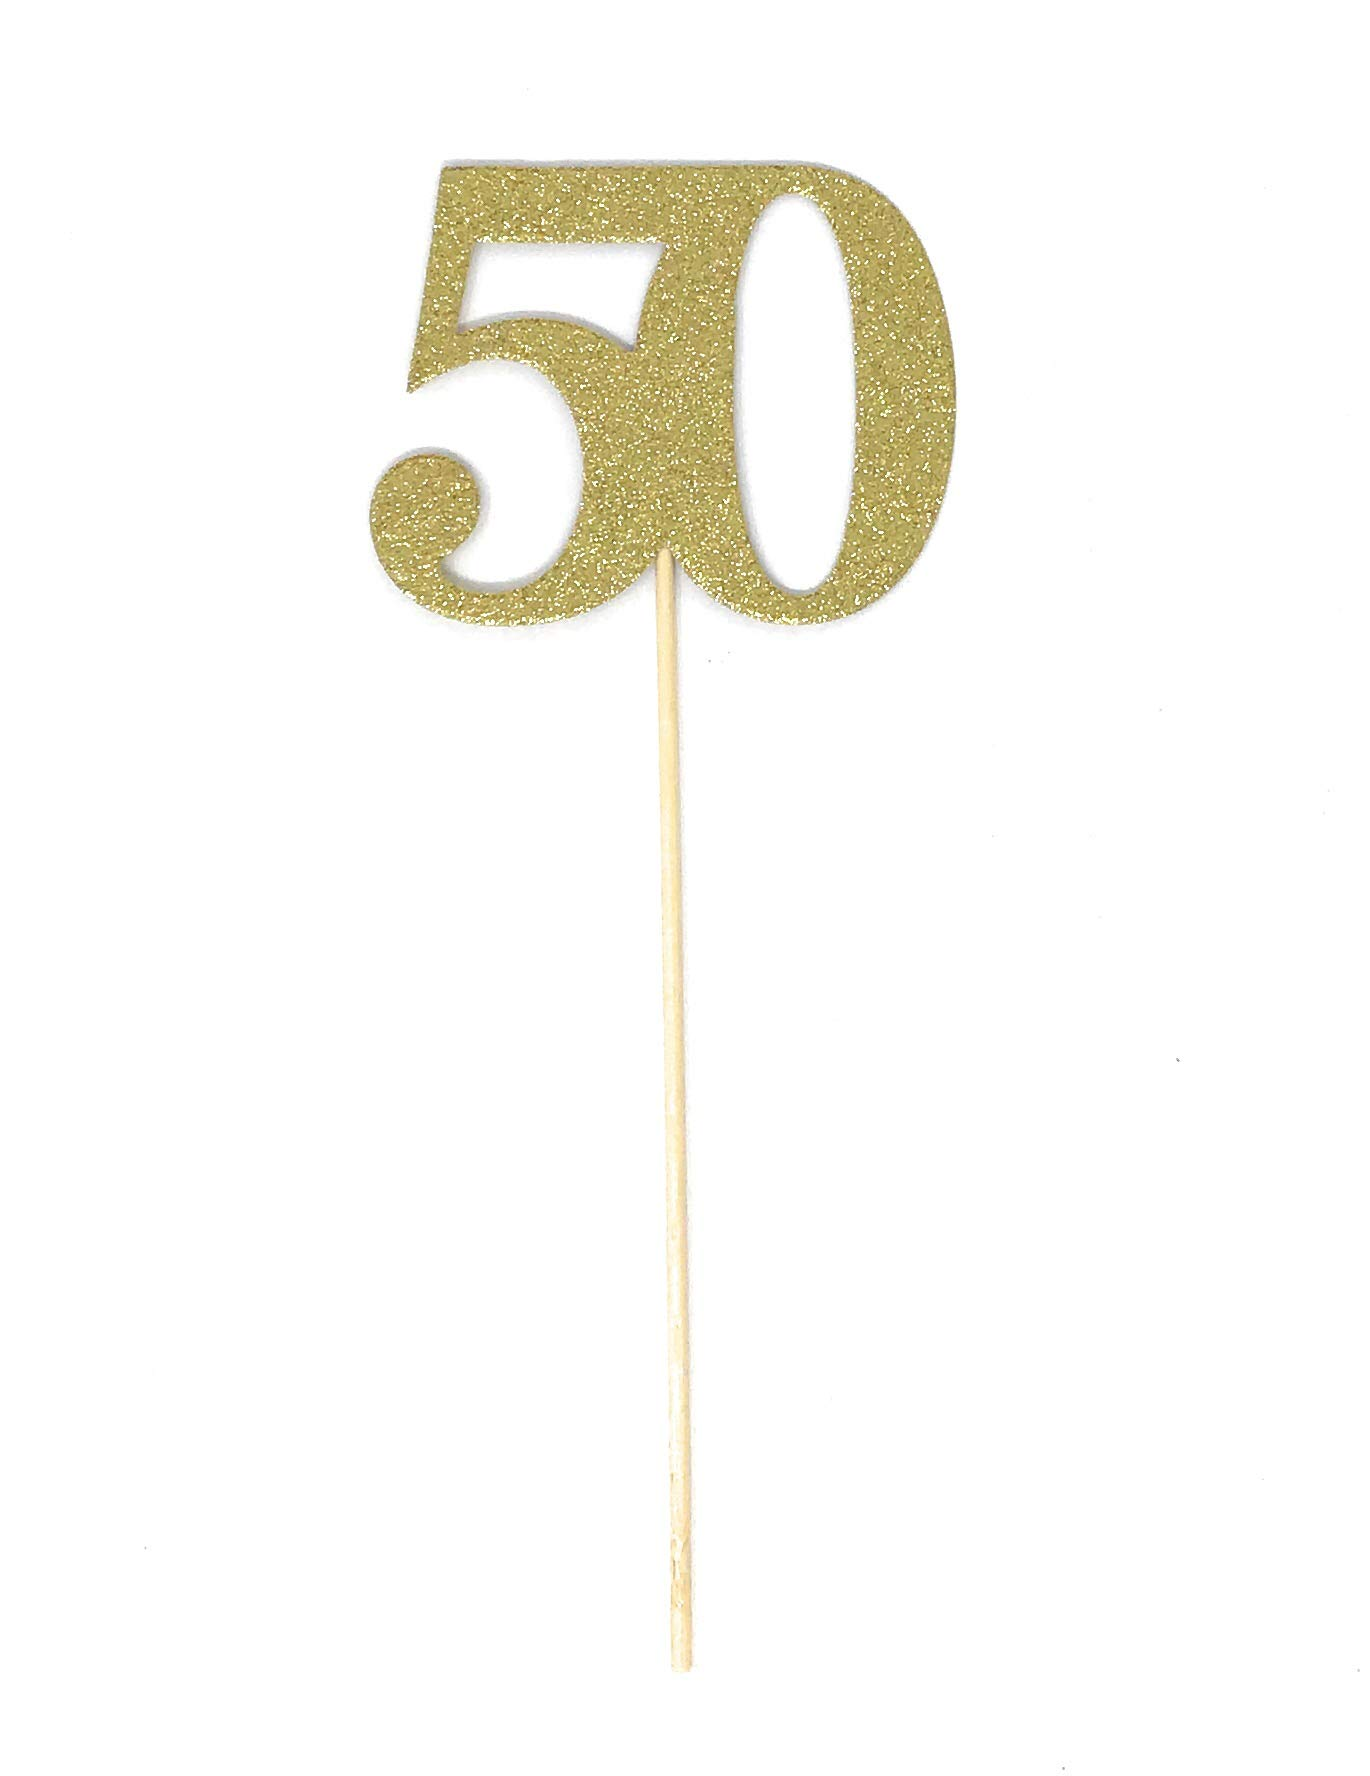 PaperGala 10 Pack Gold Number 50 Double Sided Gold Glitter Centerpiece Sticks DIY Reunions, Anniversaries, and Birthdays (Gold, 10)